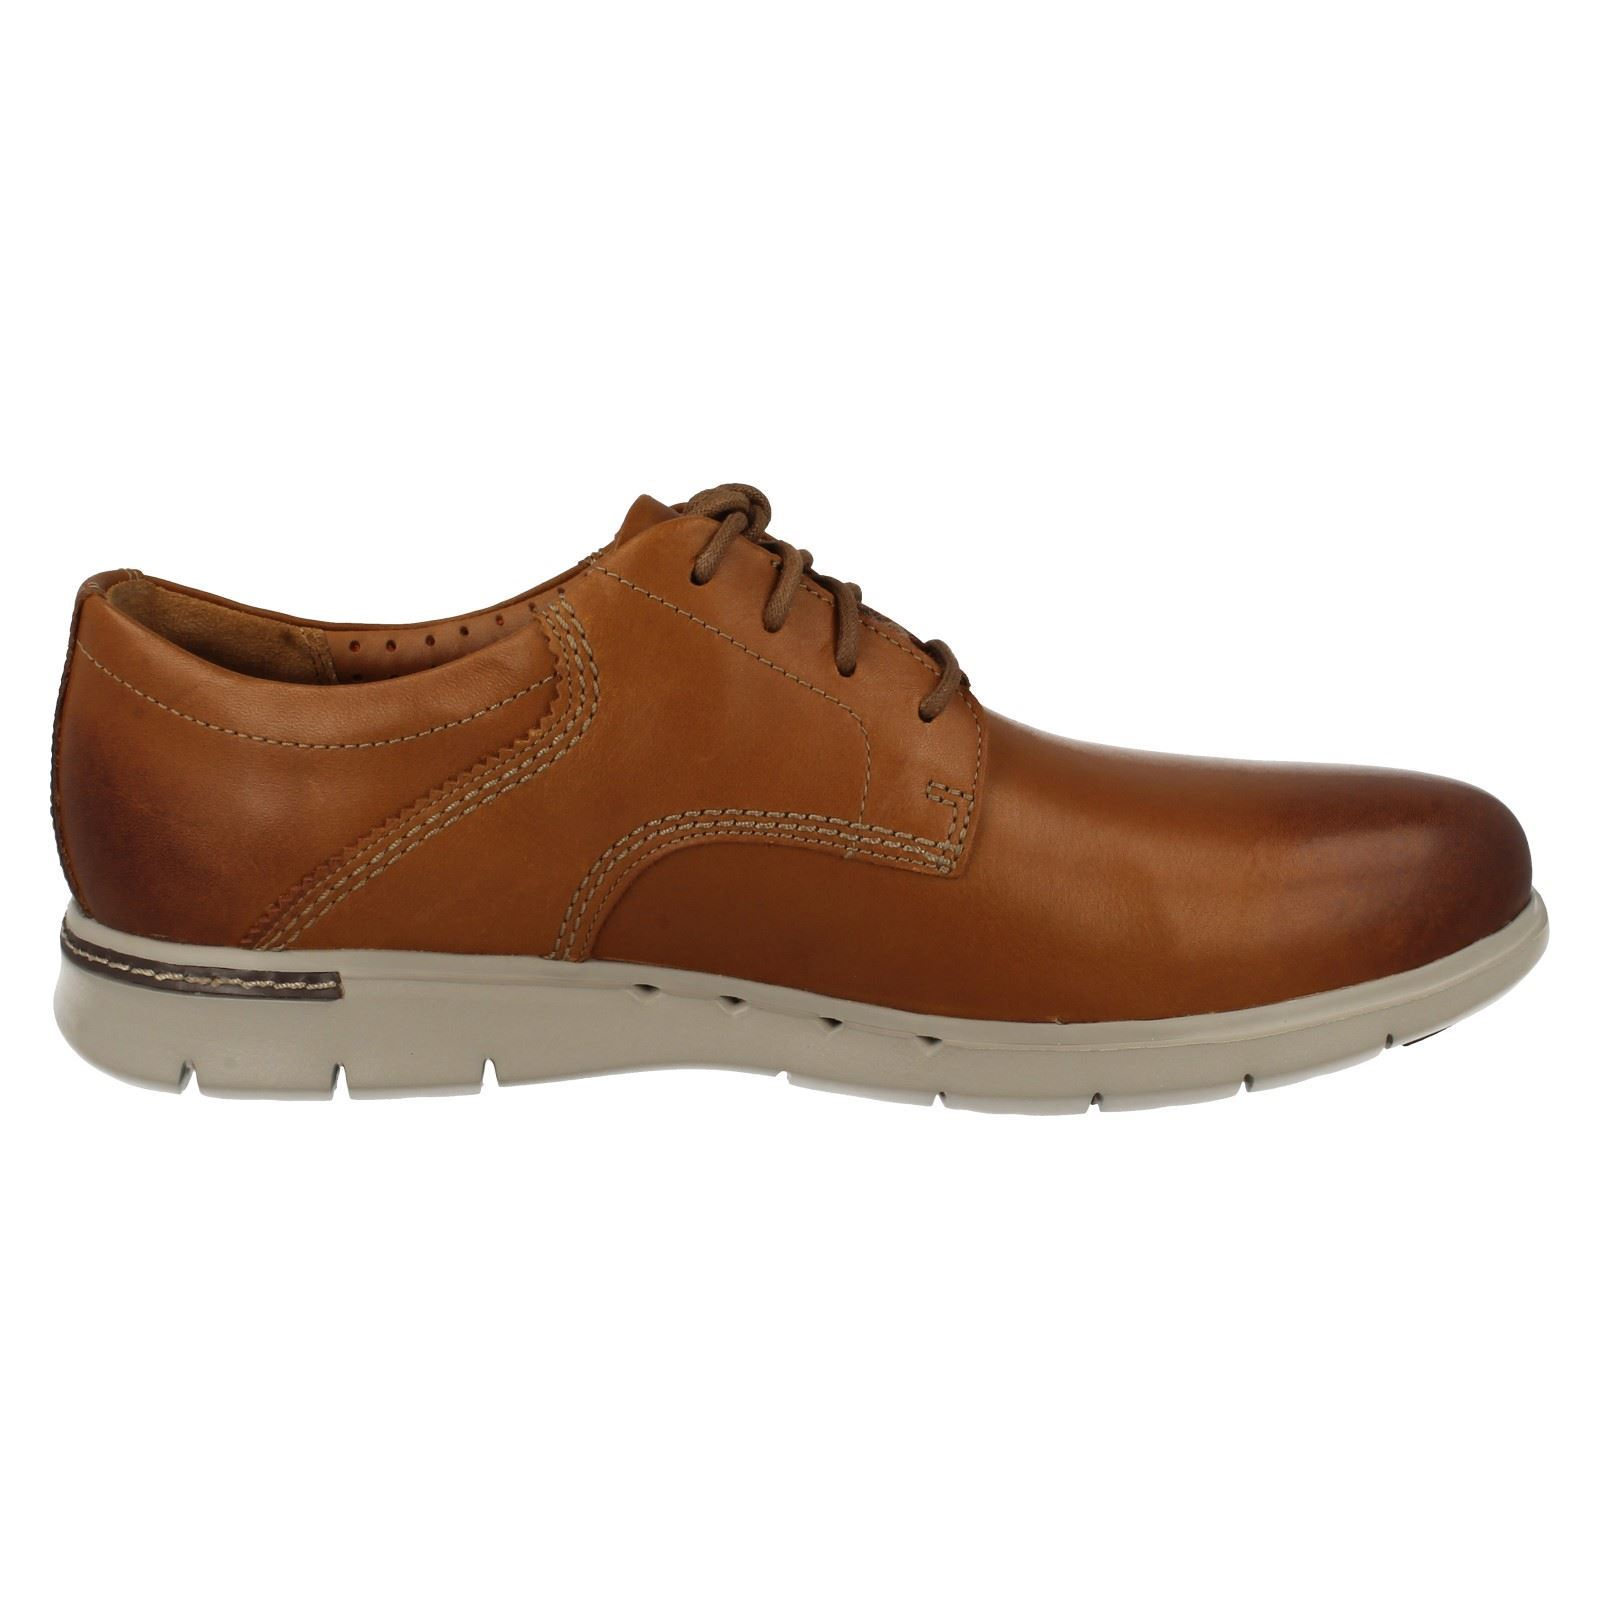 Mens Clarks Casula Lace Up Shoes The Style - Unbyner Unbyner Unbyner Lane 6e50b7